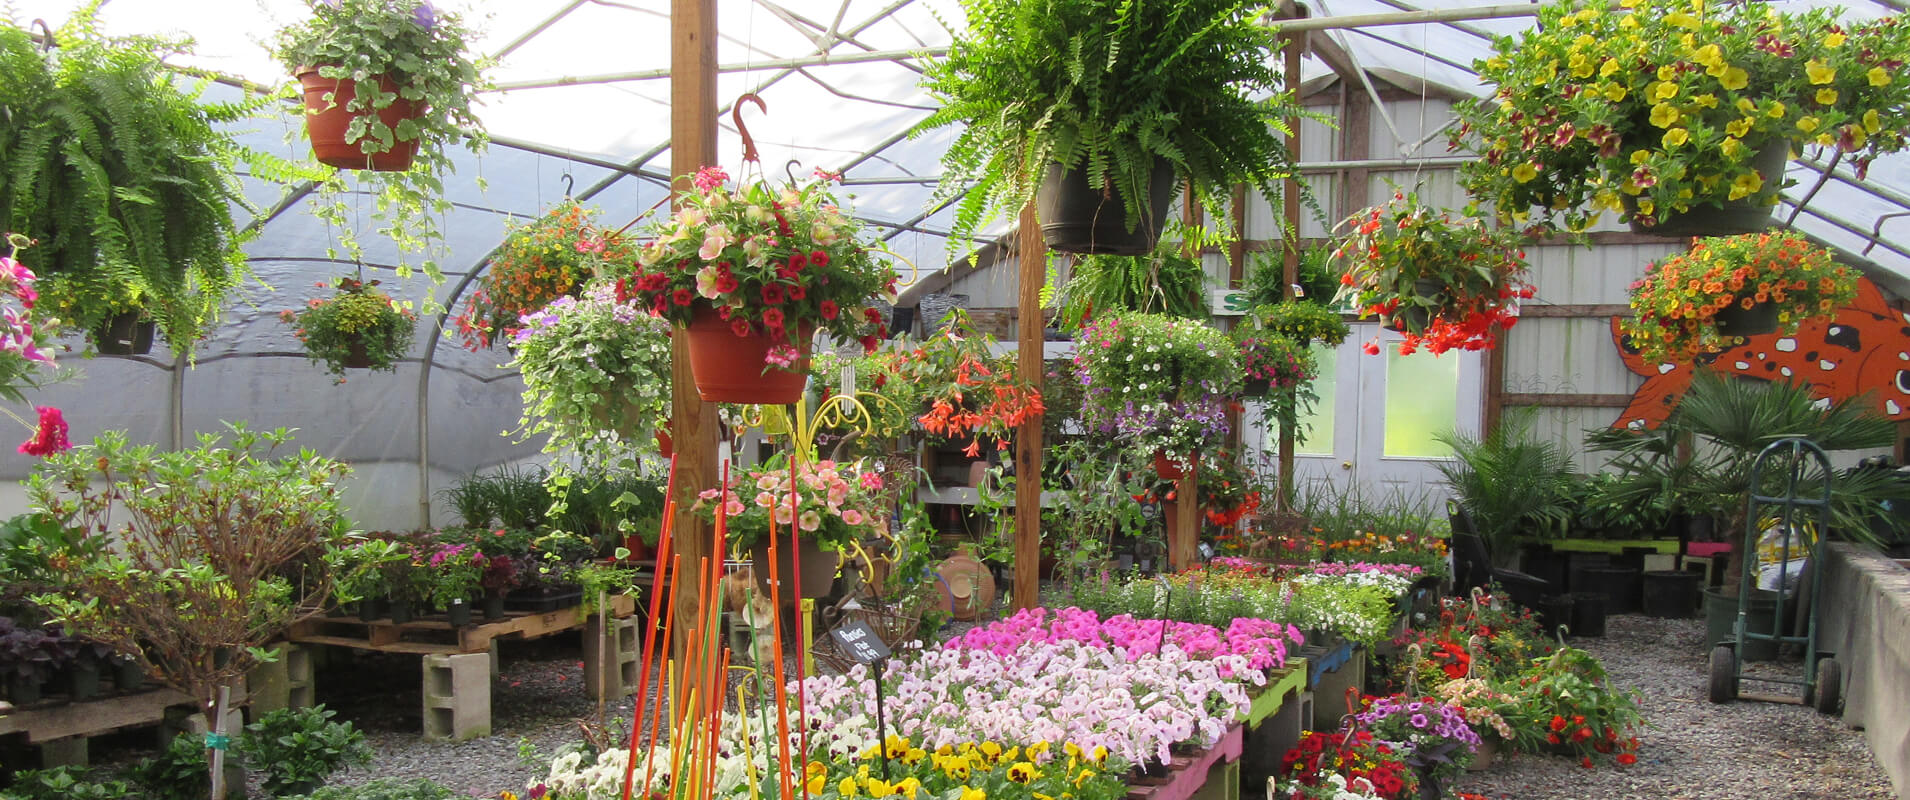 Visit our Greenhouse